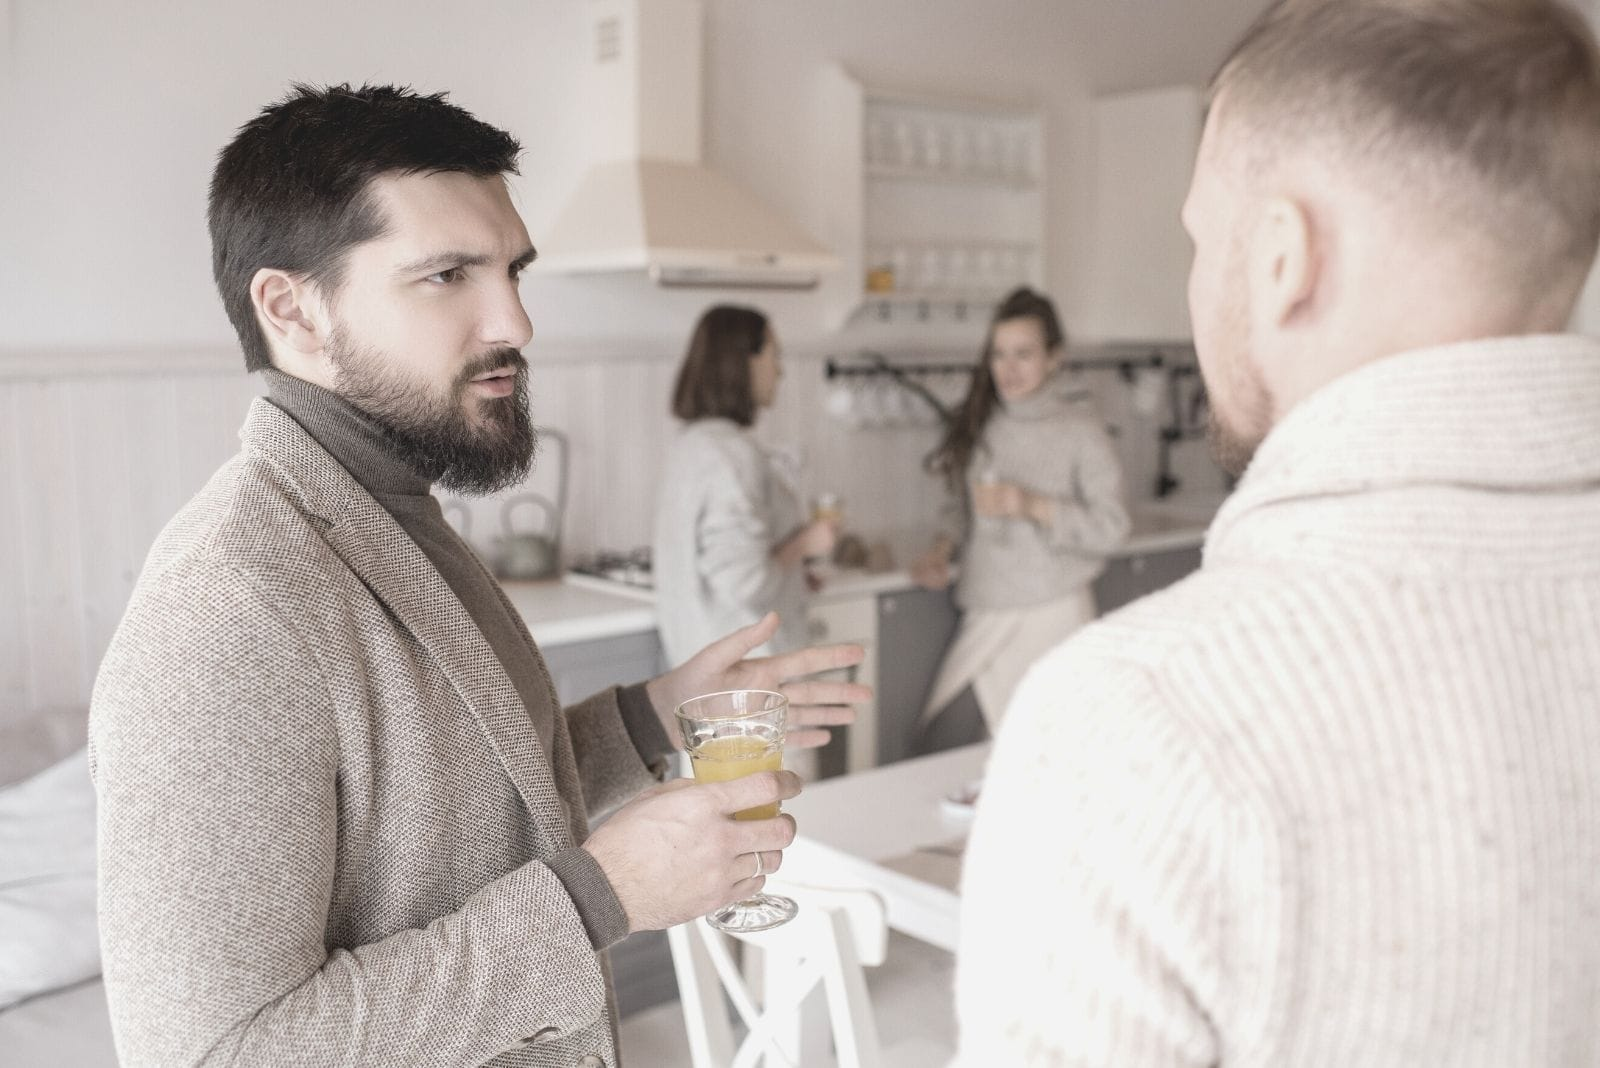 two men talking seriously inside the kitchen with two women talking at the background